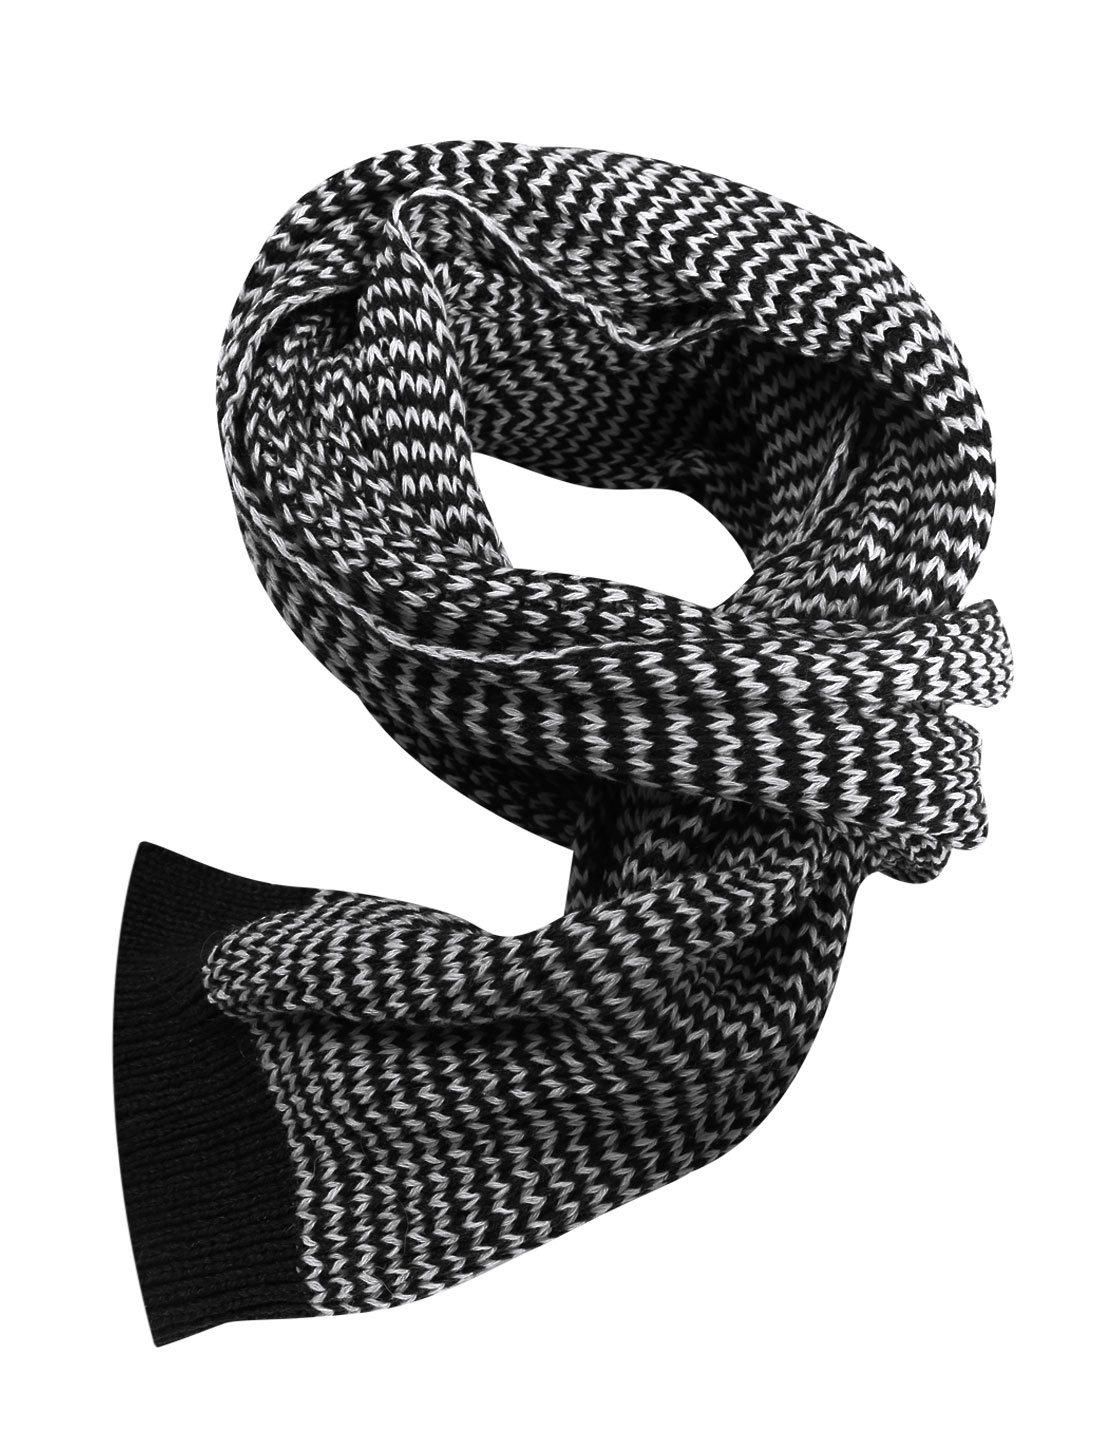 Men Contrast Color Casual Warm Winter Knitted Scarf